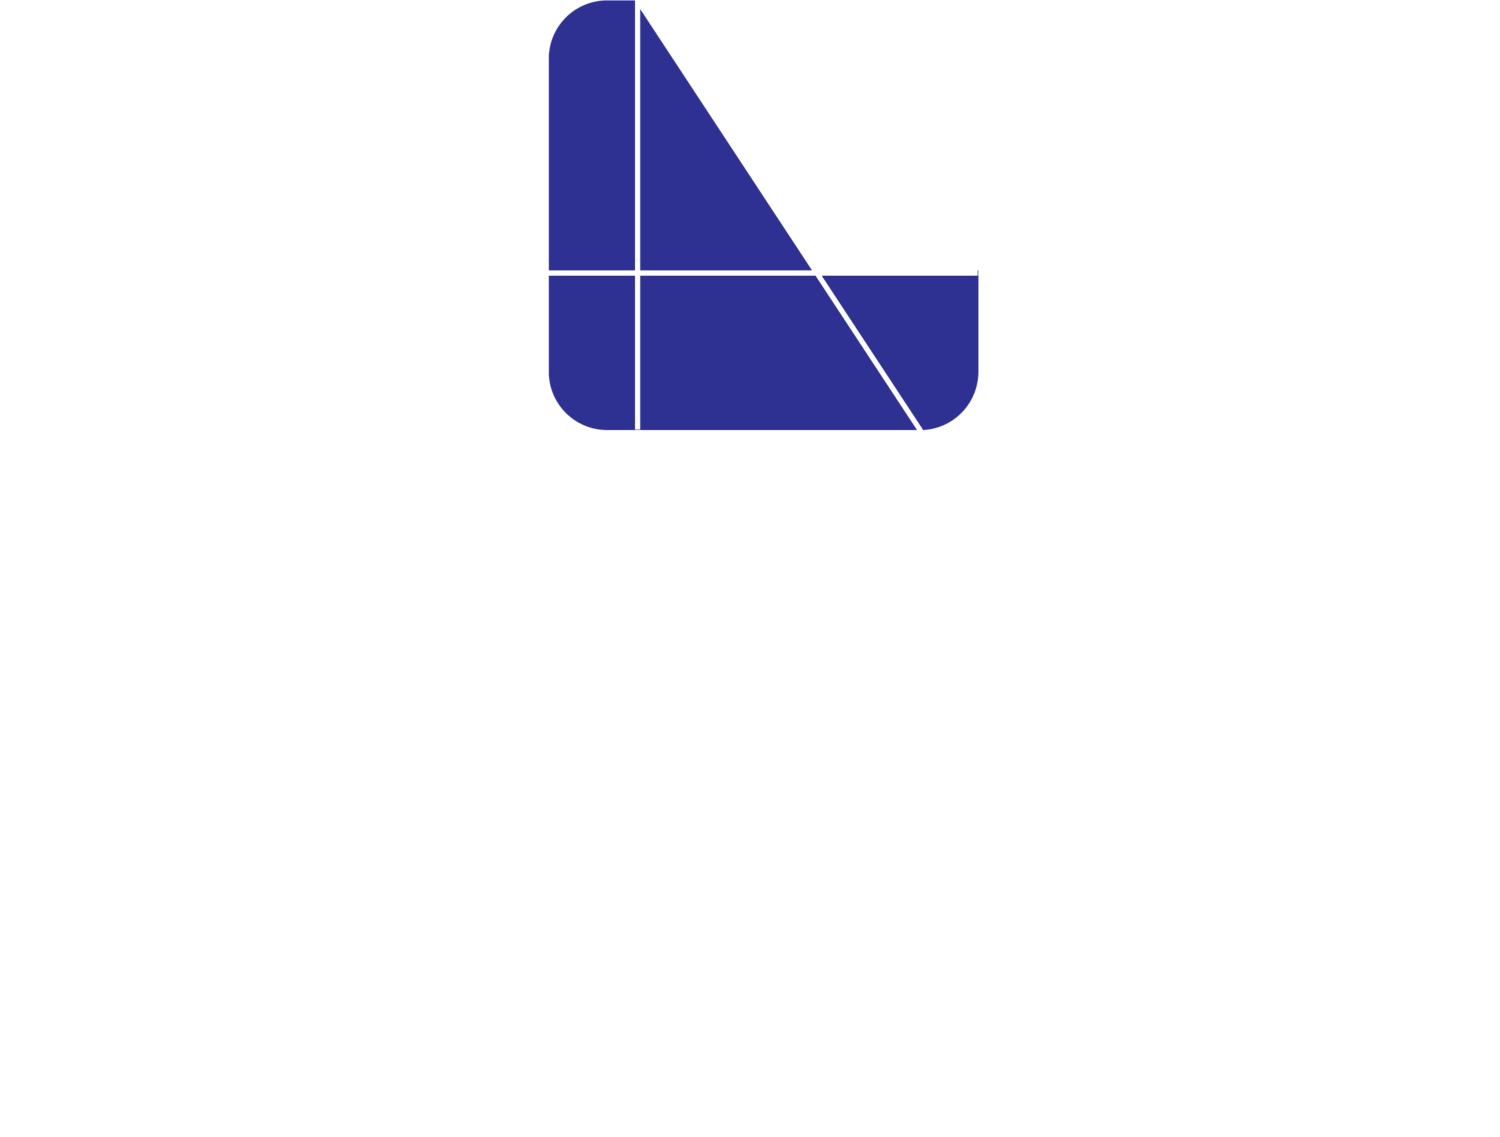 Alltech Services, Inc.